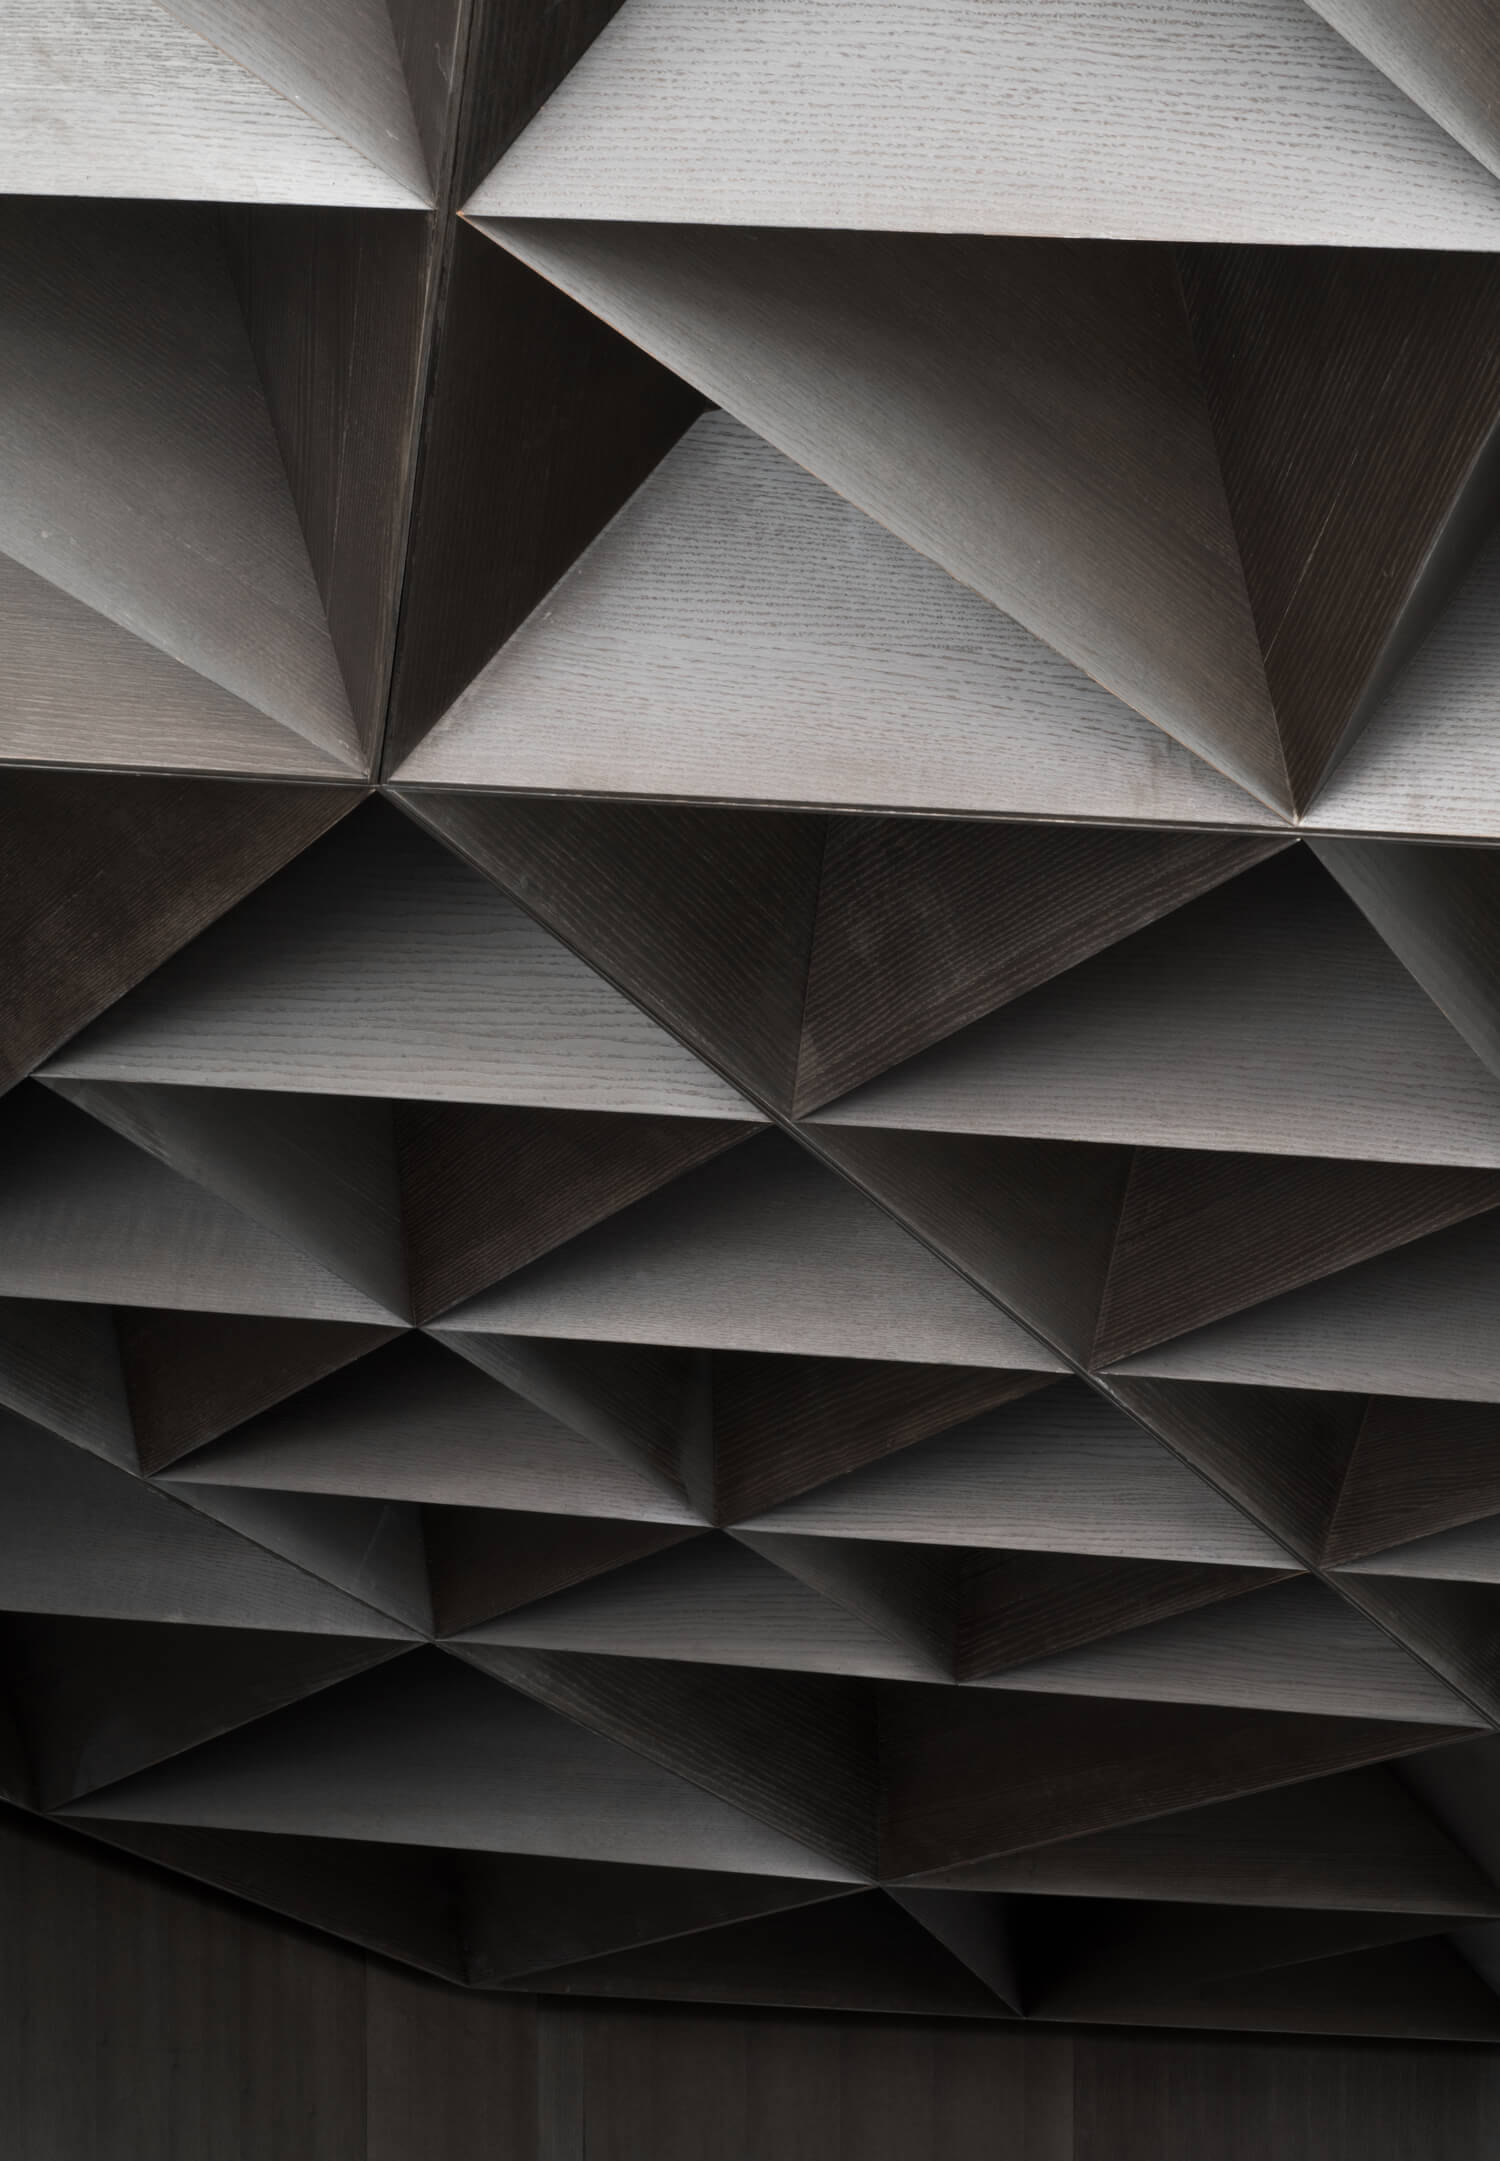 A close-up of the ceiling at Arthur Restaurant Toronto